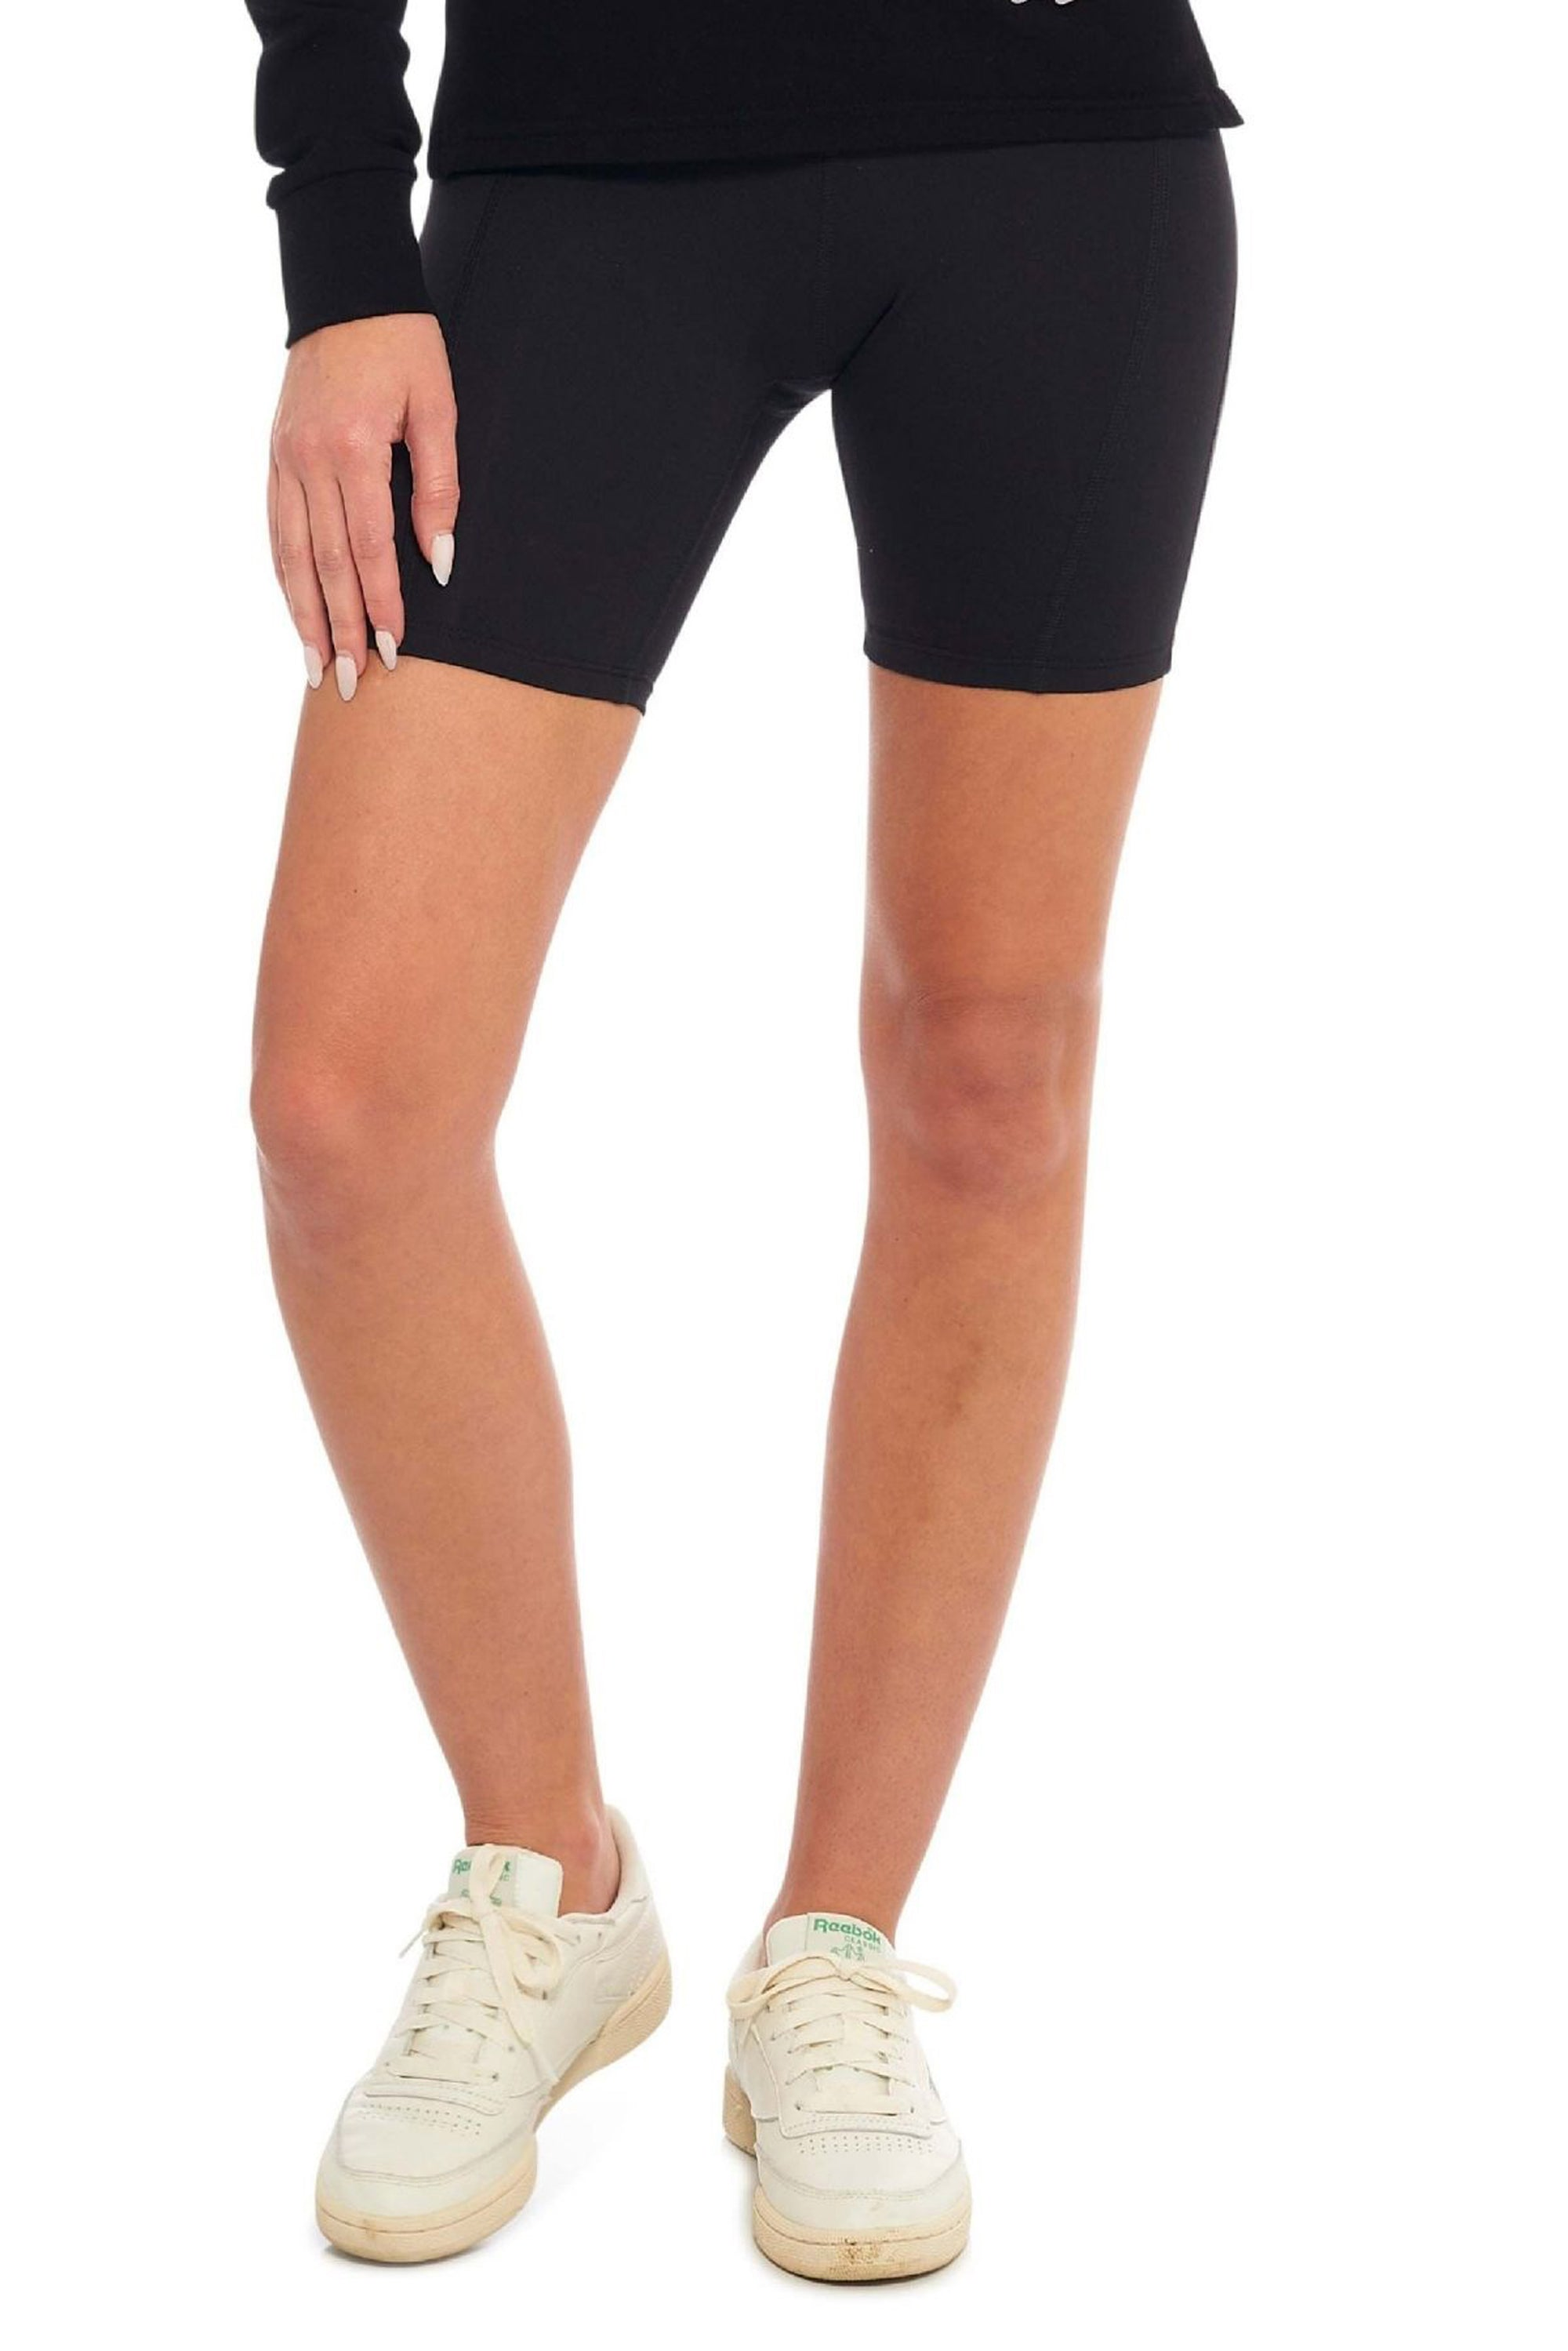 Ink Black Biker Short